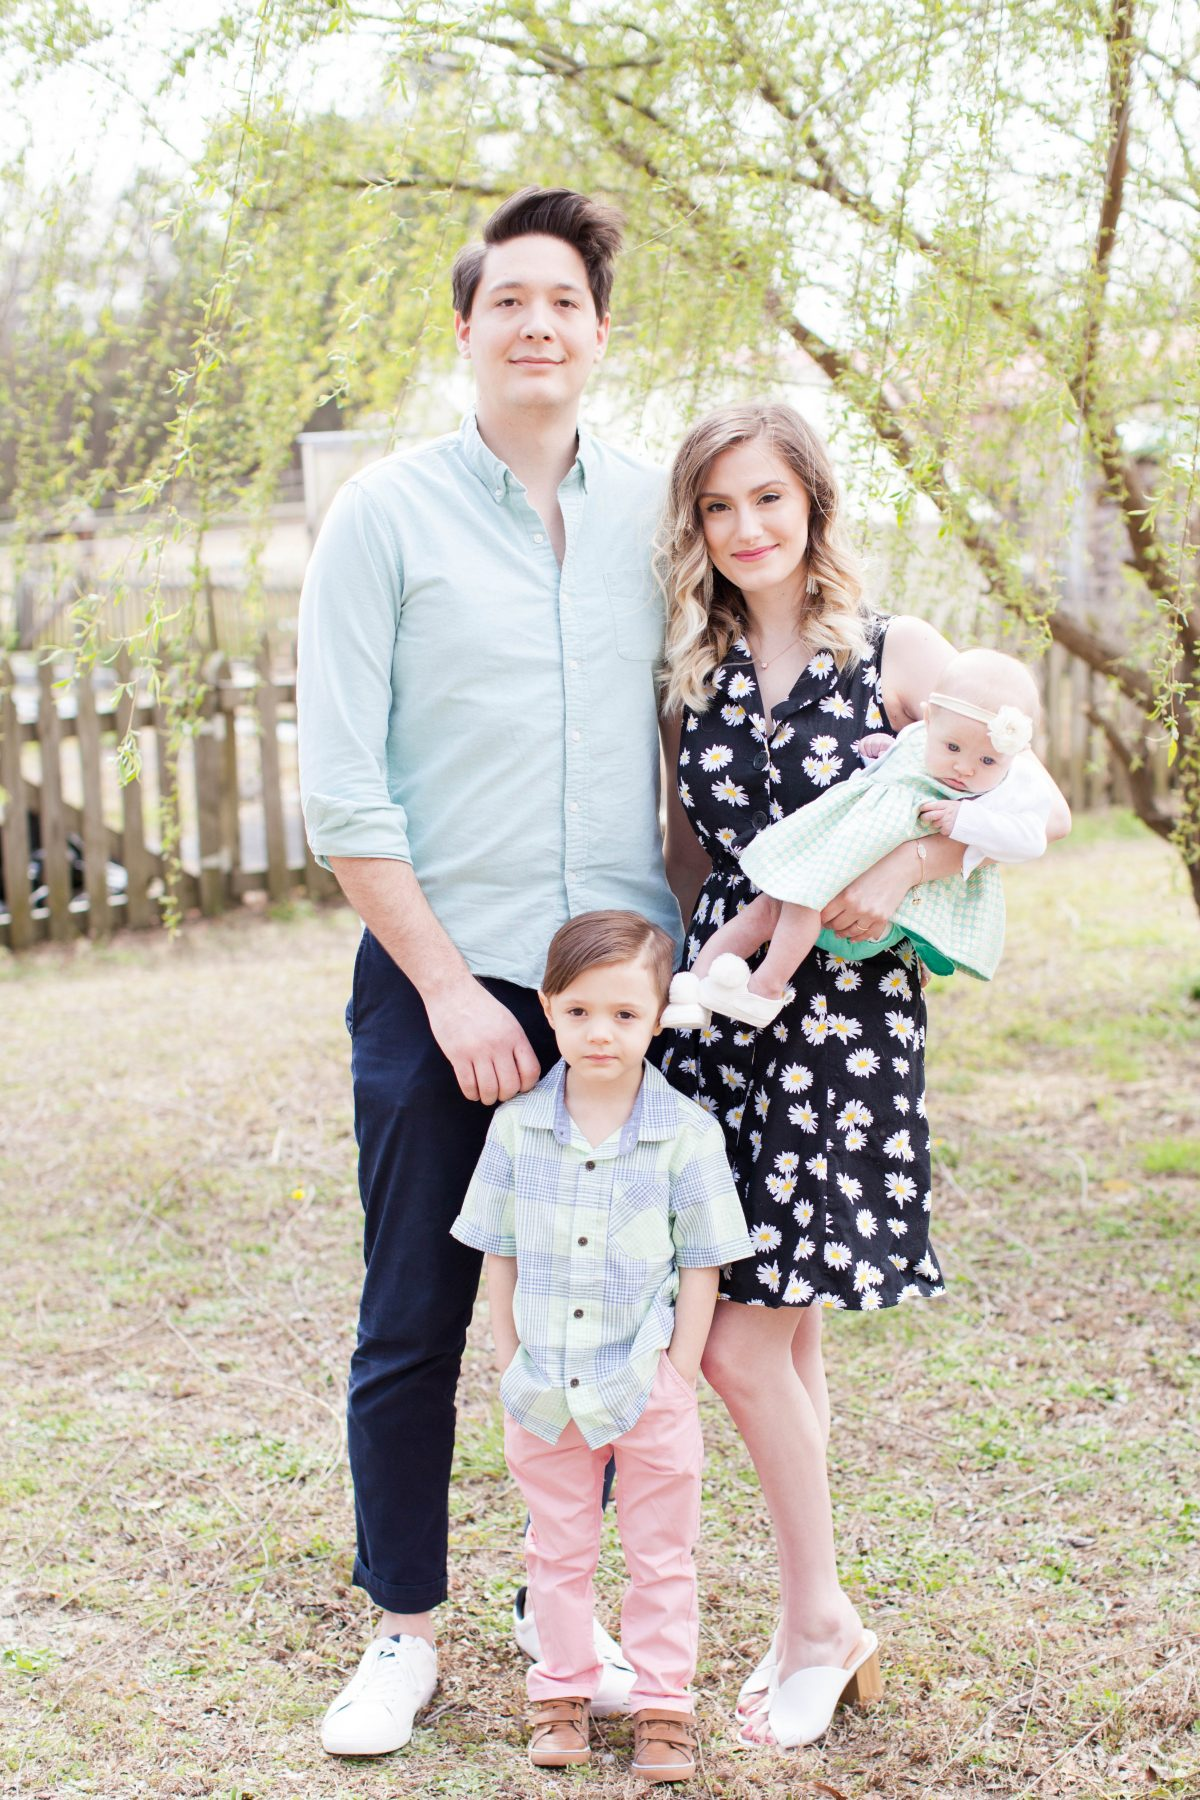 North Carolina fashion and lifestyle blogger and writer Jessica Linn in Valentine Fields Farm in Knightdale NC. Spring and Easter family photography by Hayley Gastiger a local North Carolina photographer.